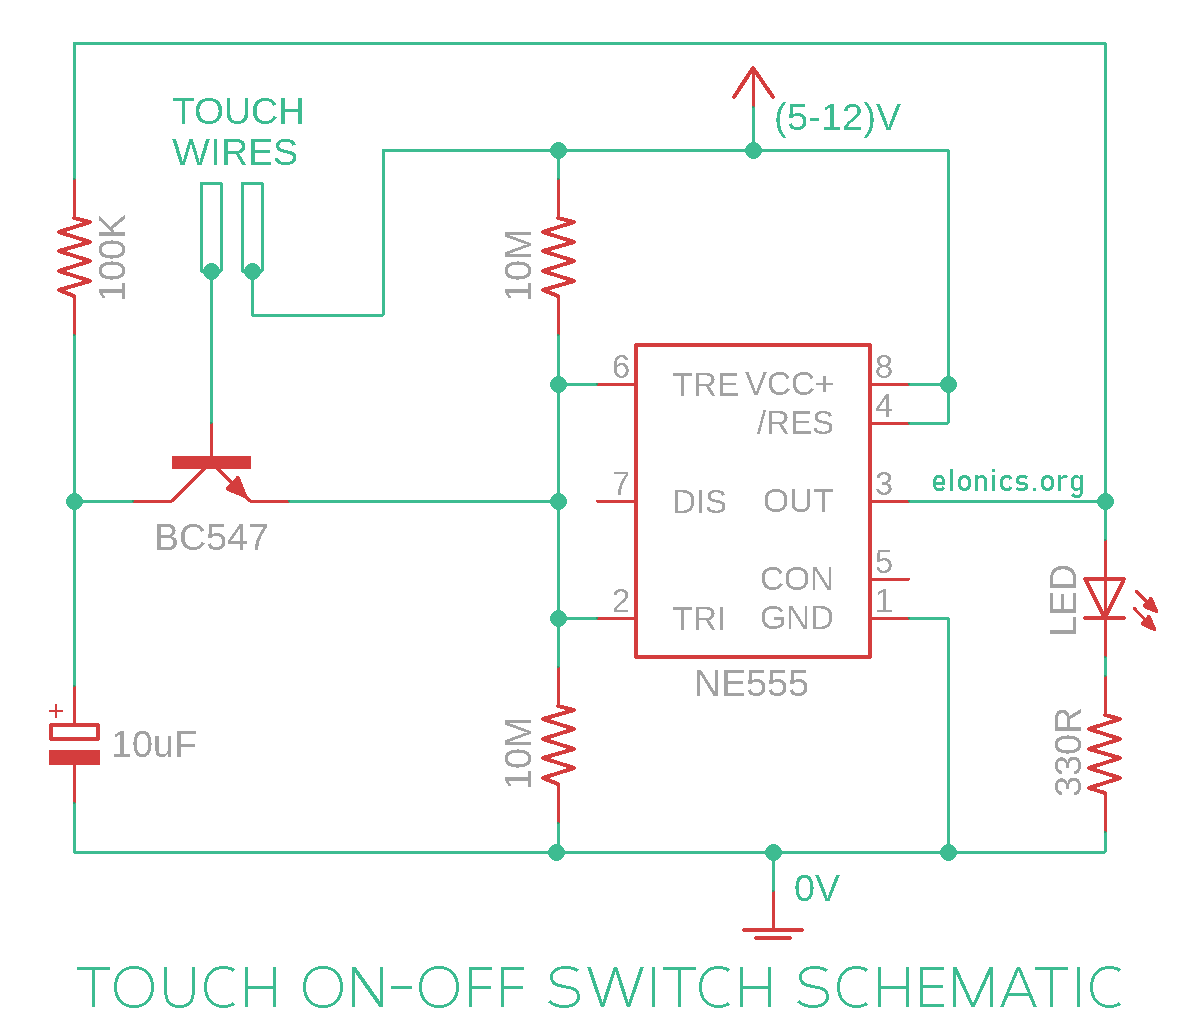 Schematic of Touch On Touch Off Latching Sensor Switch Circuit Using 555 Timer IC